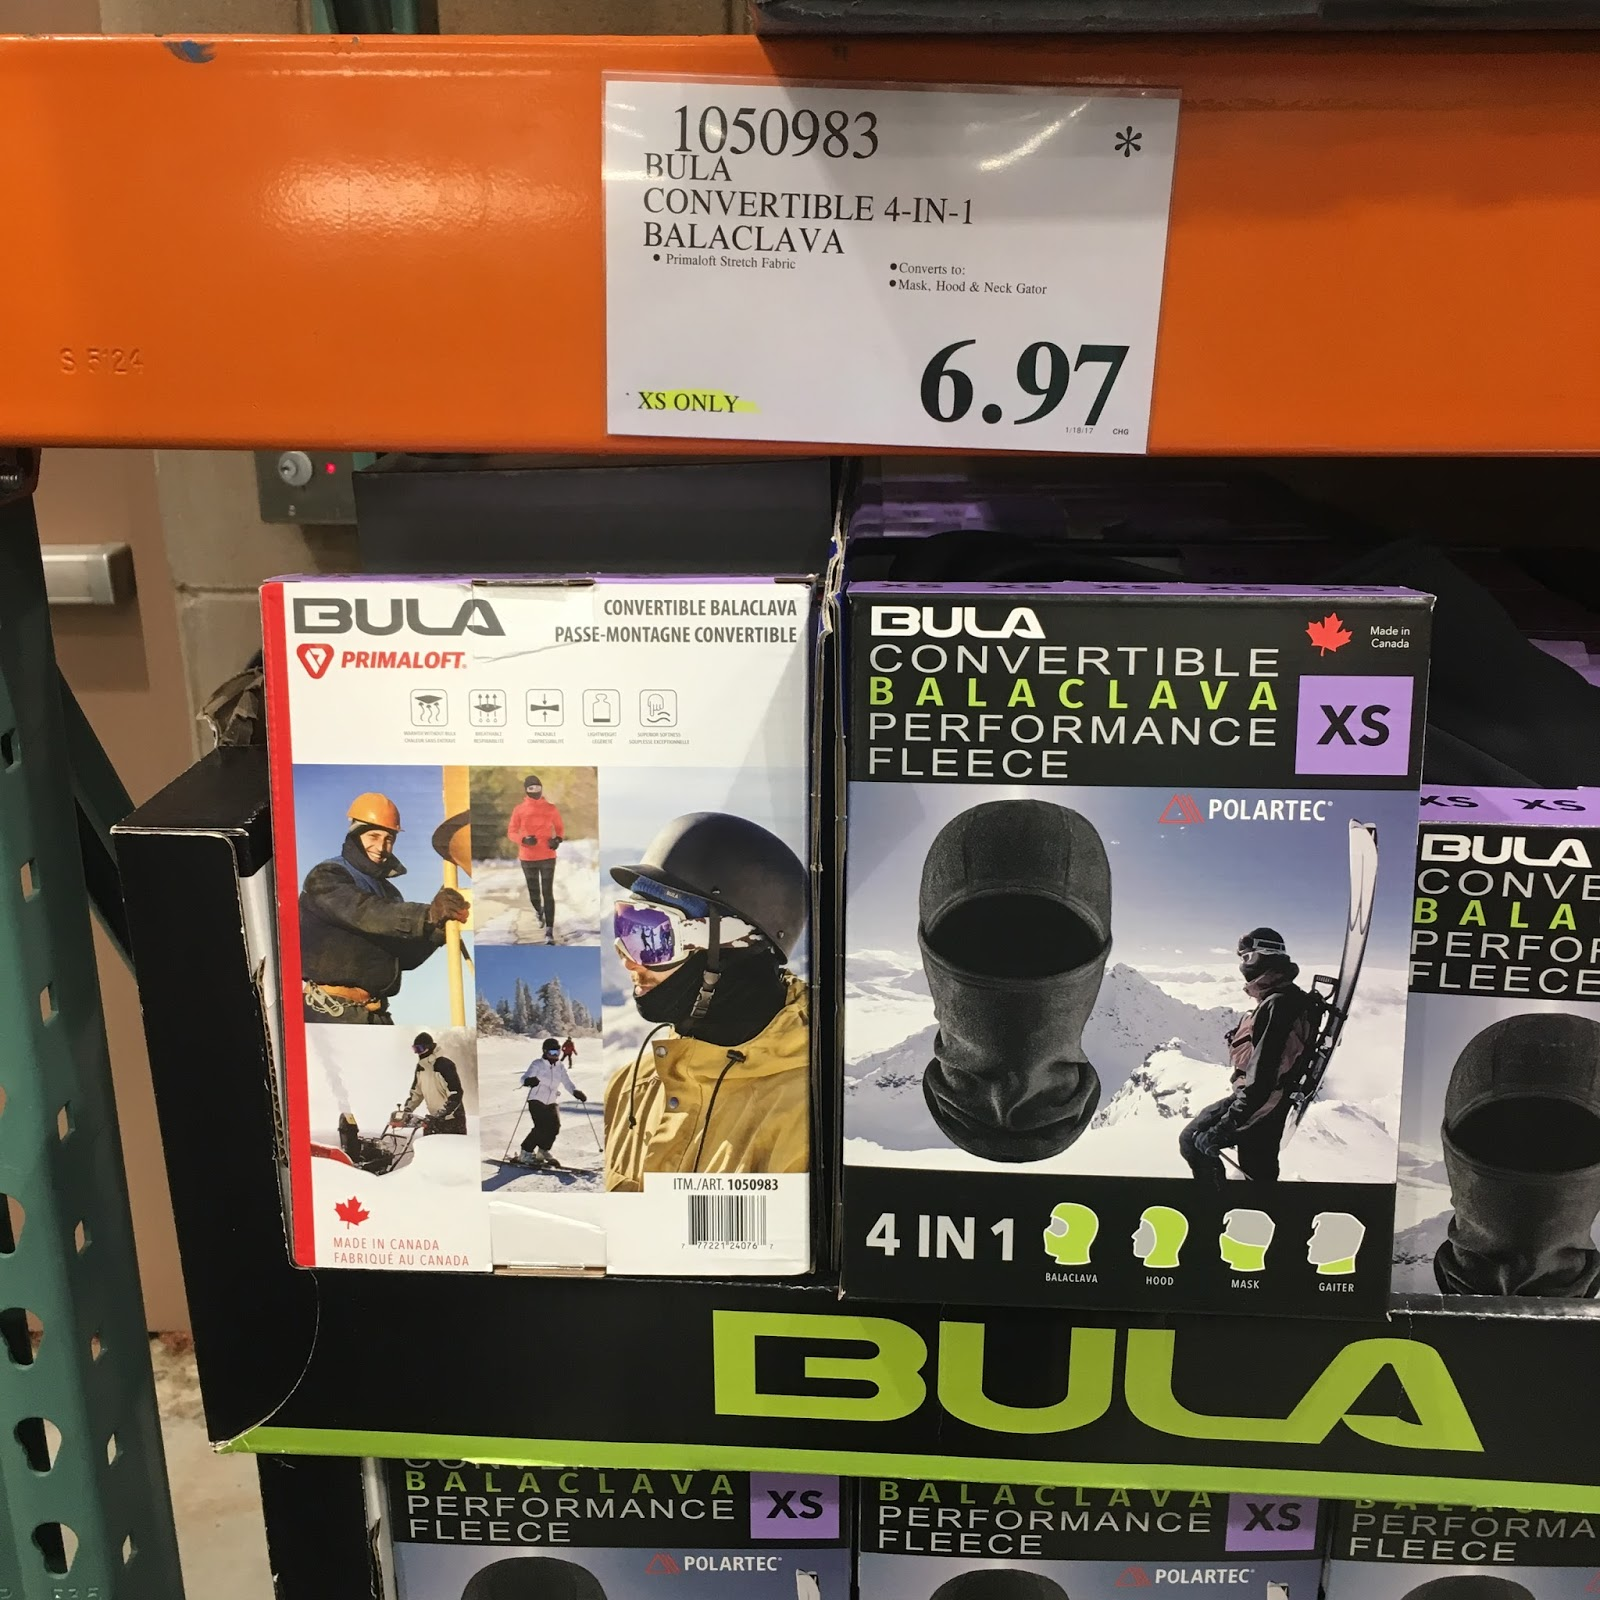 the costco connoisseur my costco travels frederick maryland i also got a bula convertible 4 in 1 balaclava item 1050983 marked down to 6 97 for my mom so she can run in the wee hours of the morning out her